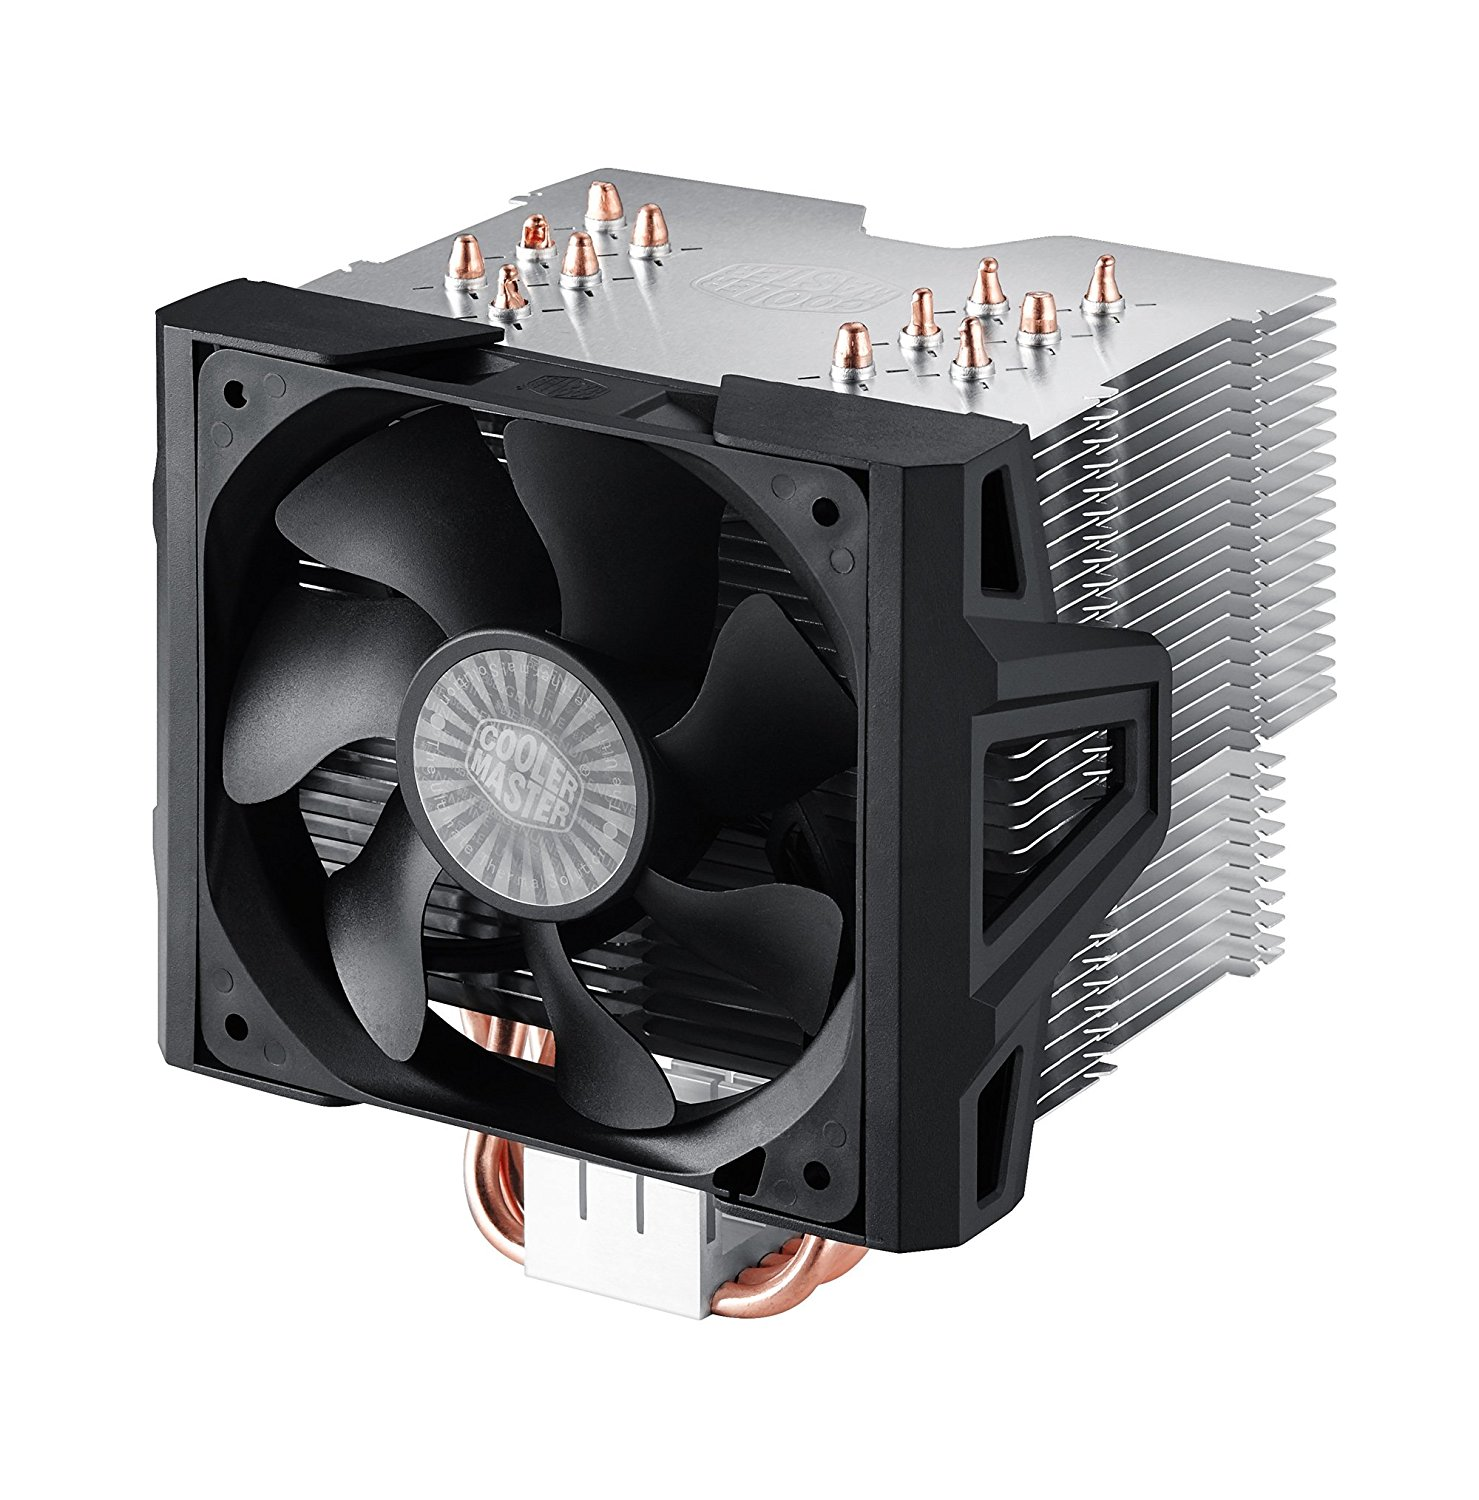 Cooler Master Hyper 612 Ver.2 - Silent CPU Air Cooler with 6 Direct Contact Heatpipes and Folding Fin Structure (RR-H6V2-13PK-R1)